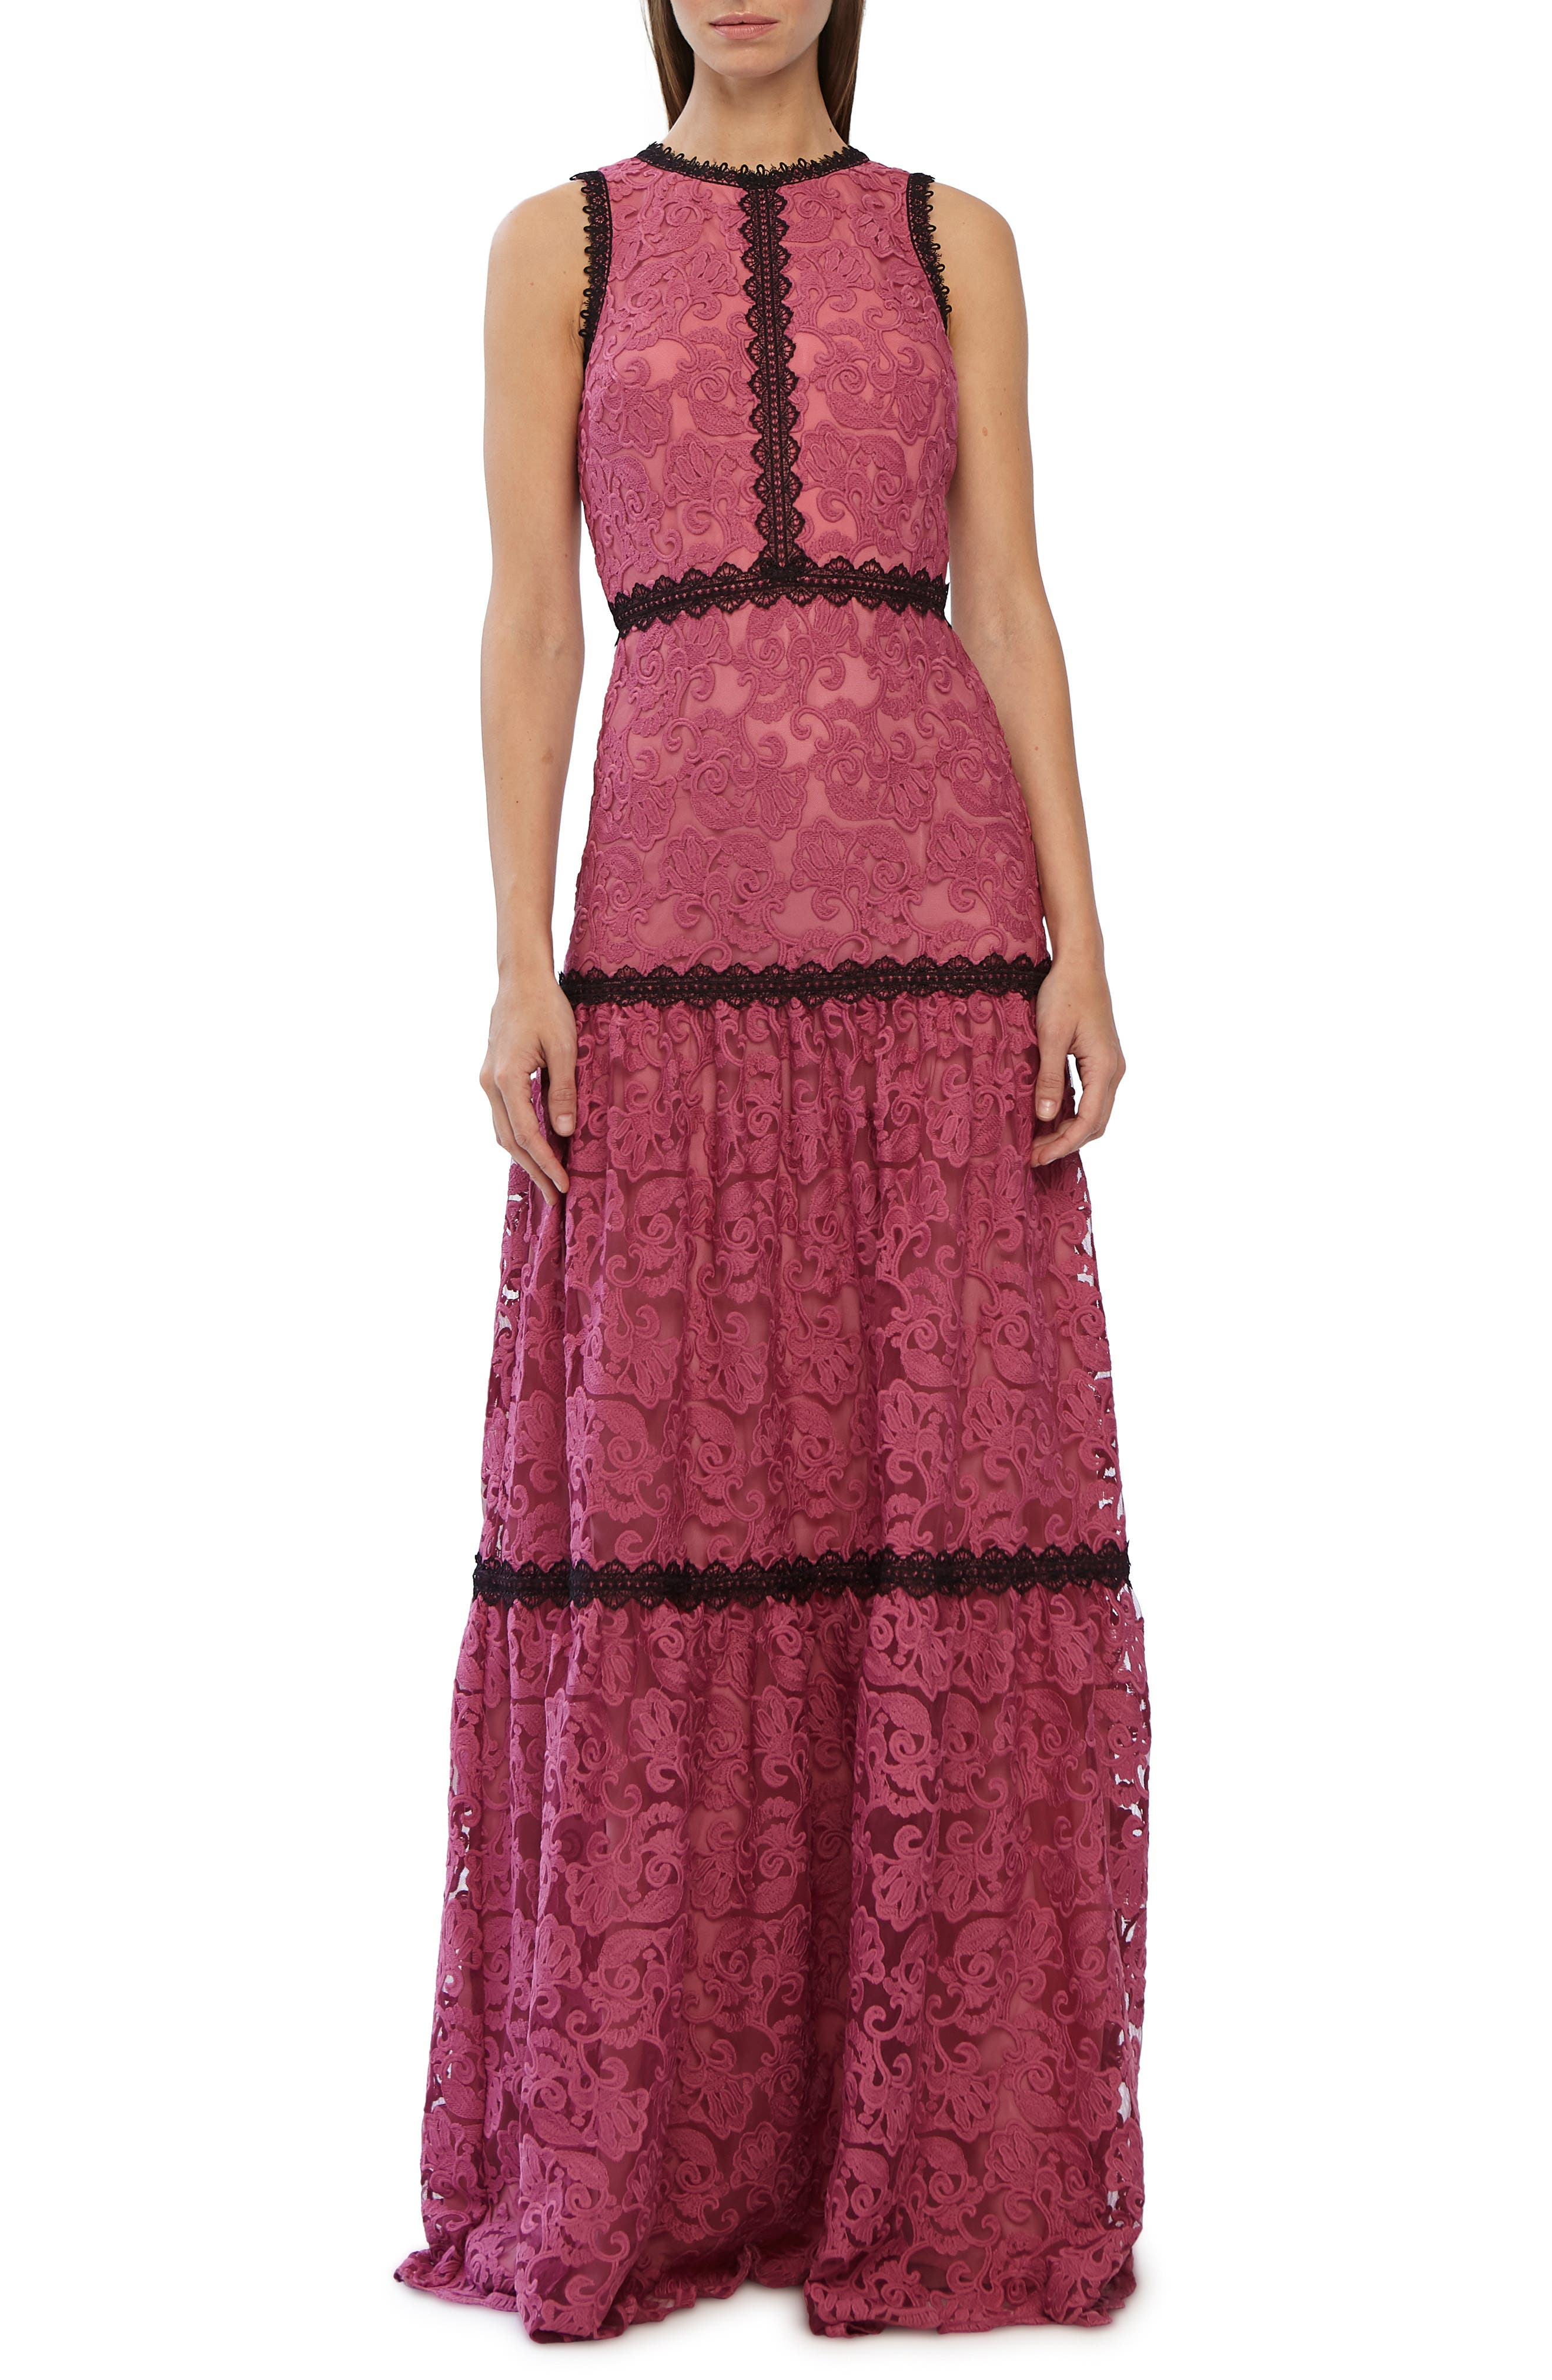 Ml Monique Lhuillier Lace Trim Evening Dress, Pink